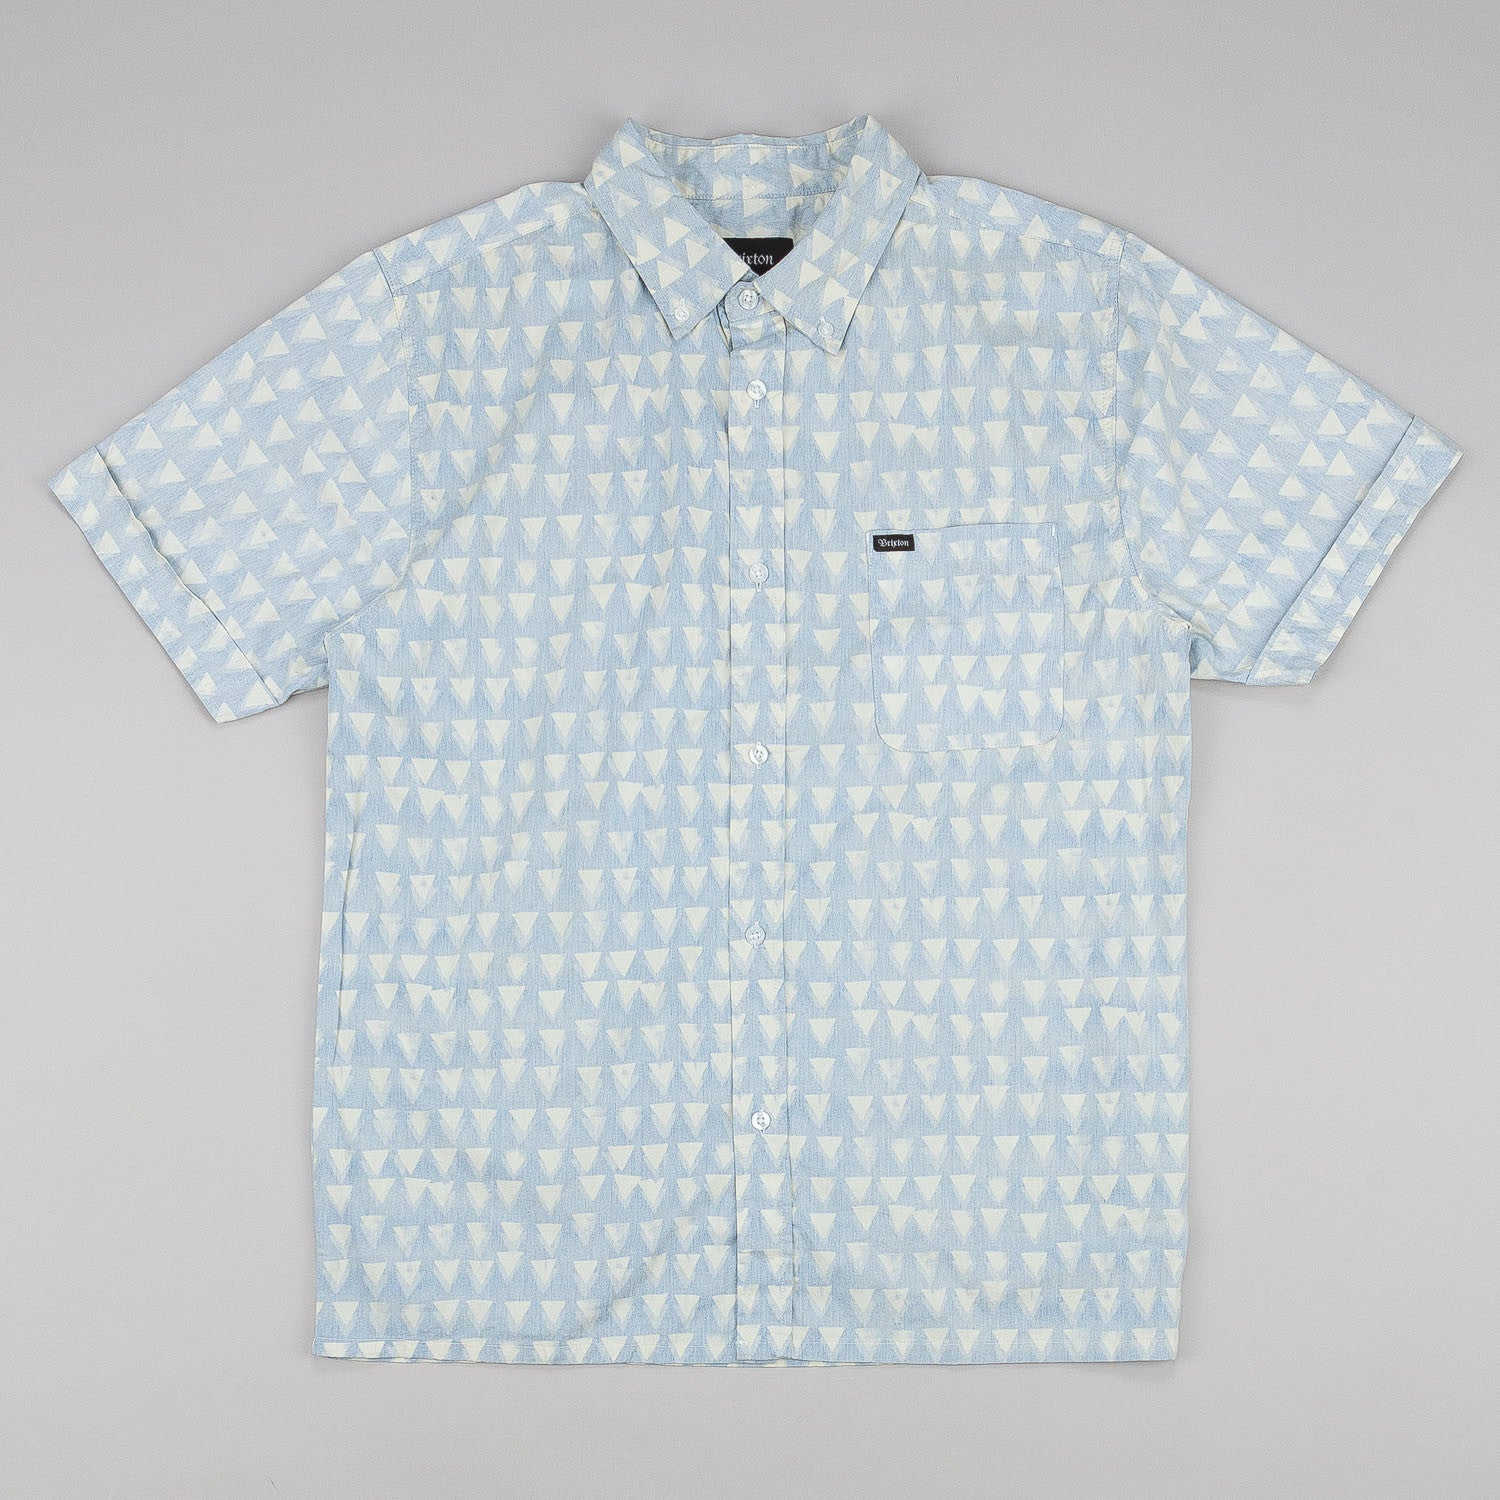 Brixton Cadet Short Sleeve Shirt